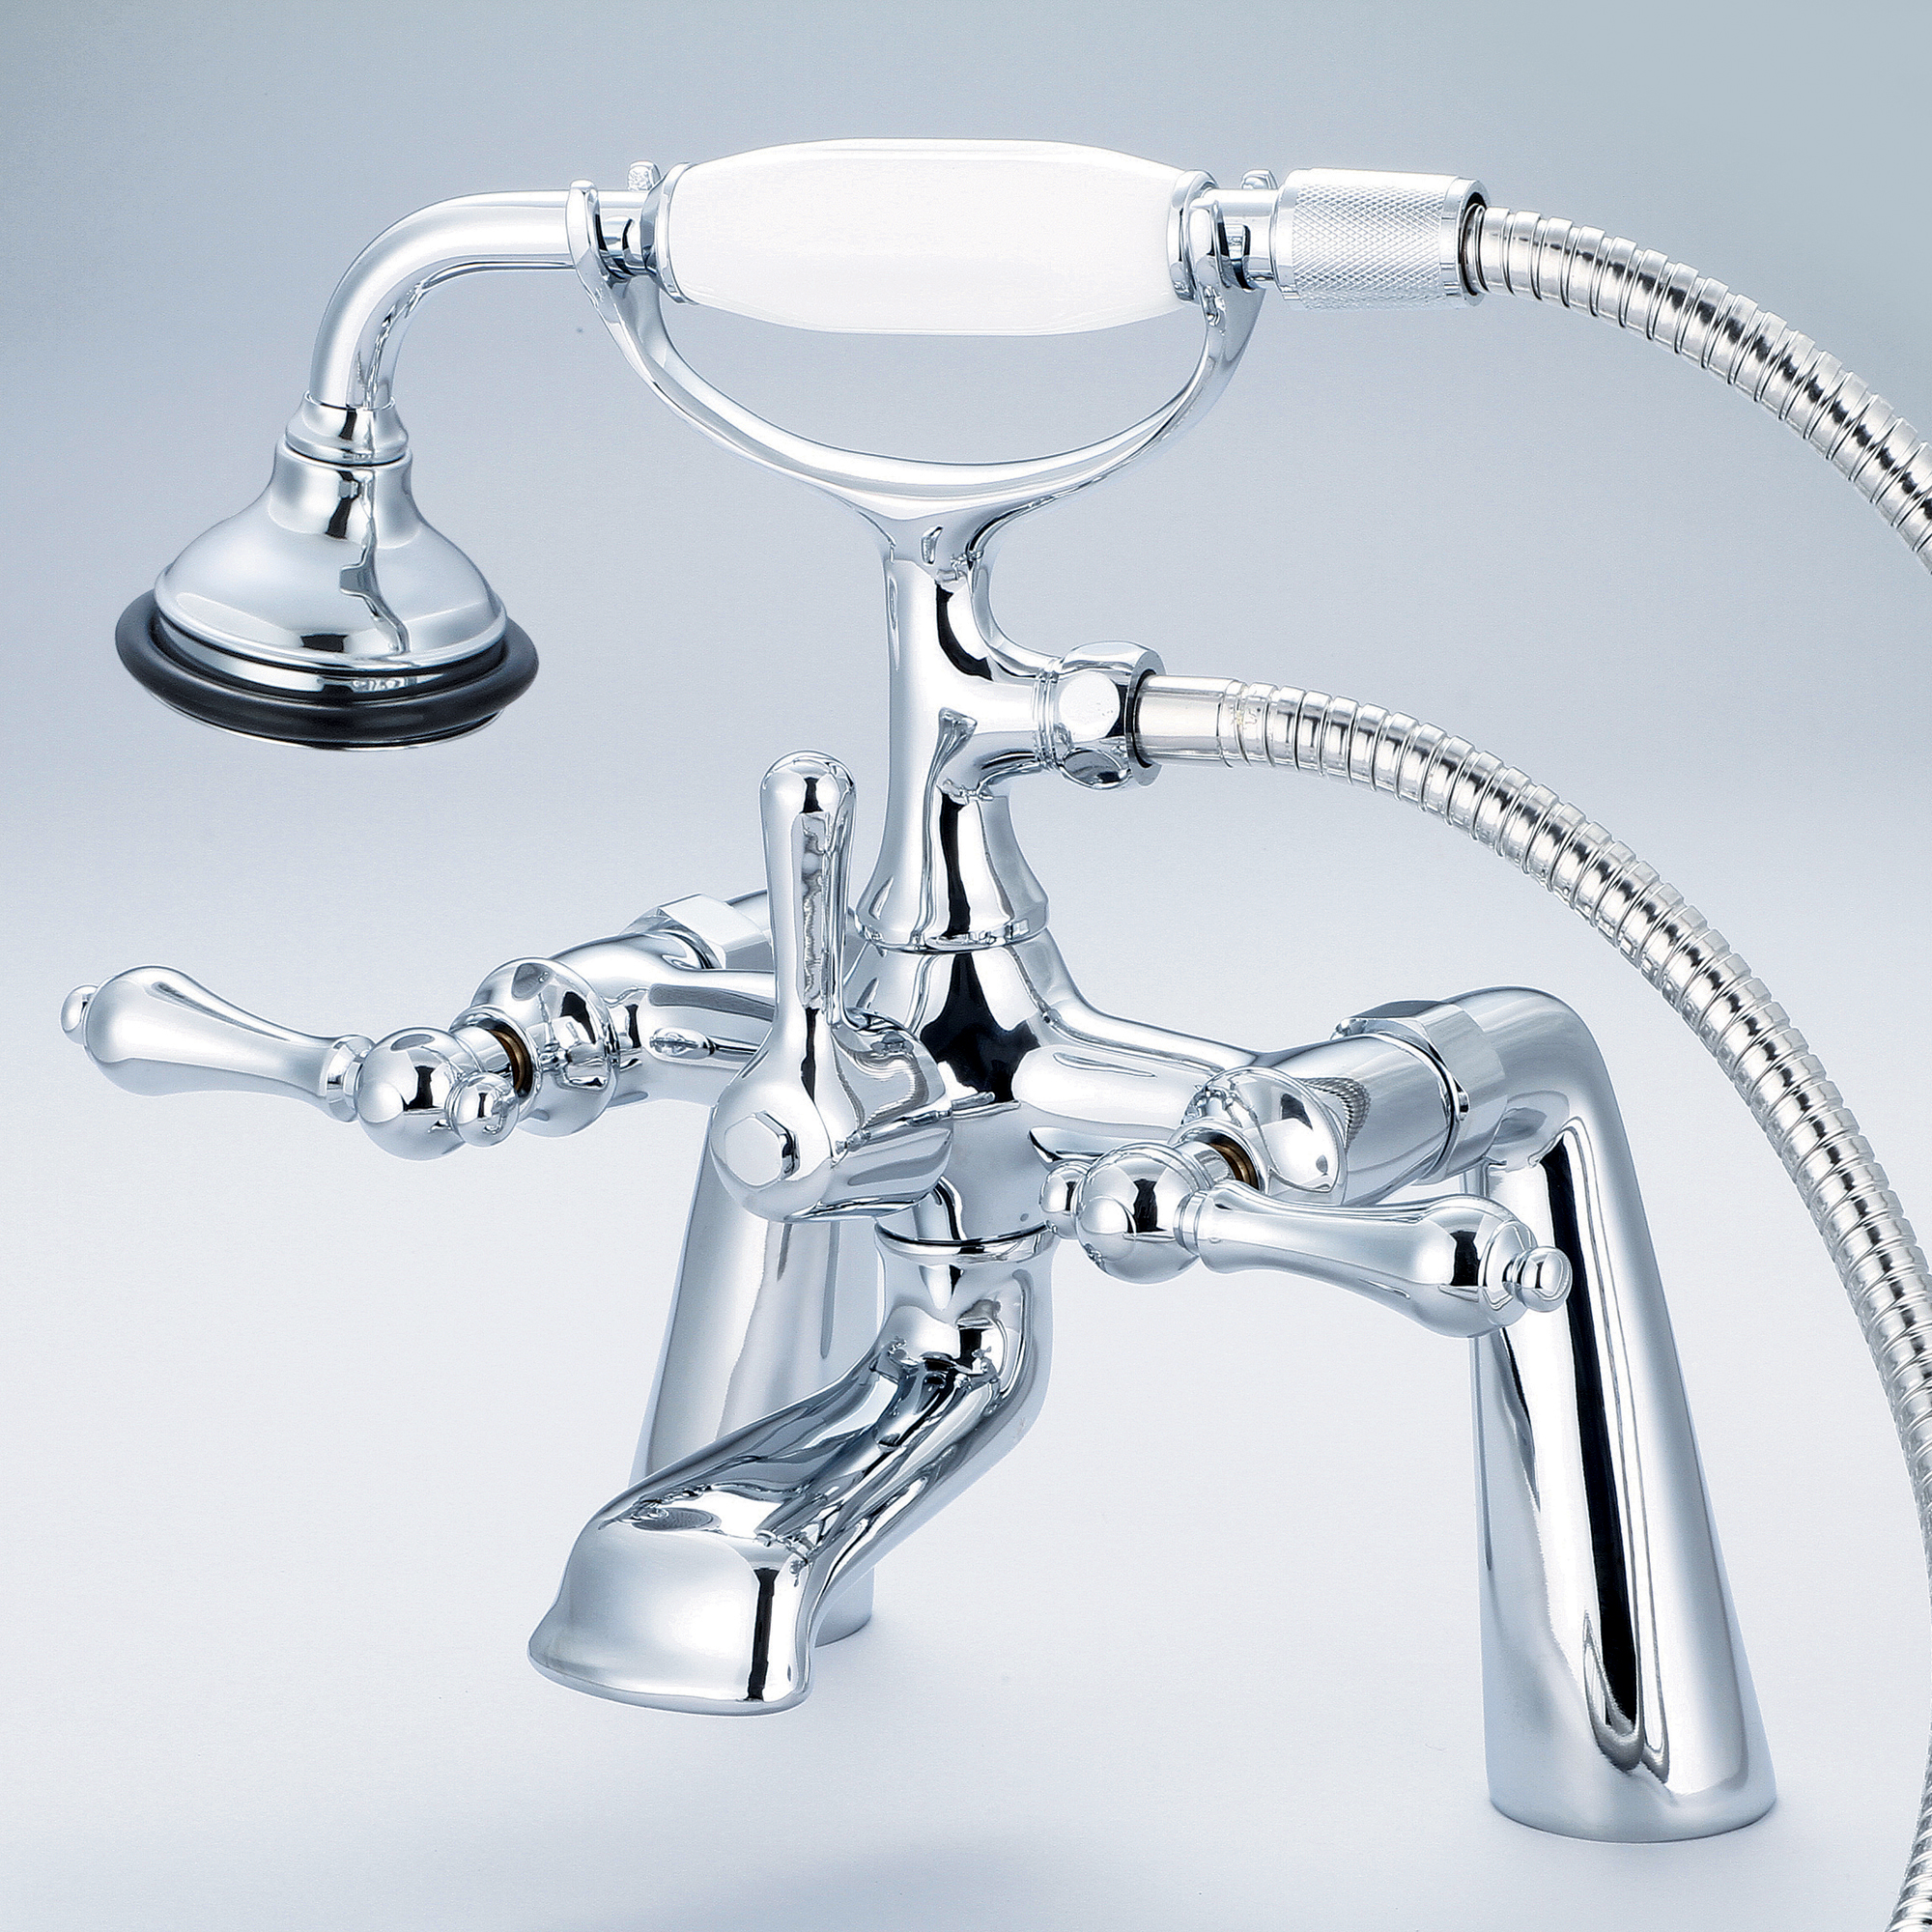 Vintage Classic 7 Inch Spread Deck Mount Tub Faucet With Handheld Shower in Chrome Finish With Metal Lever Handles Without Labels